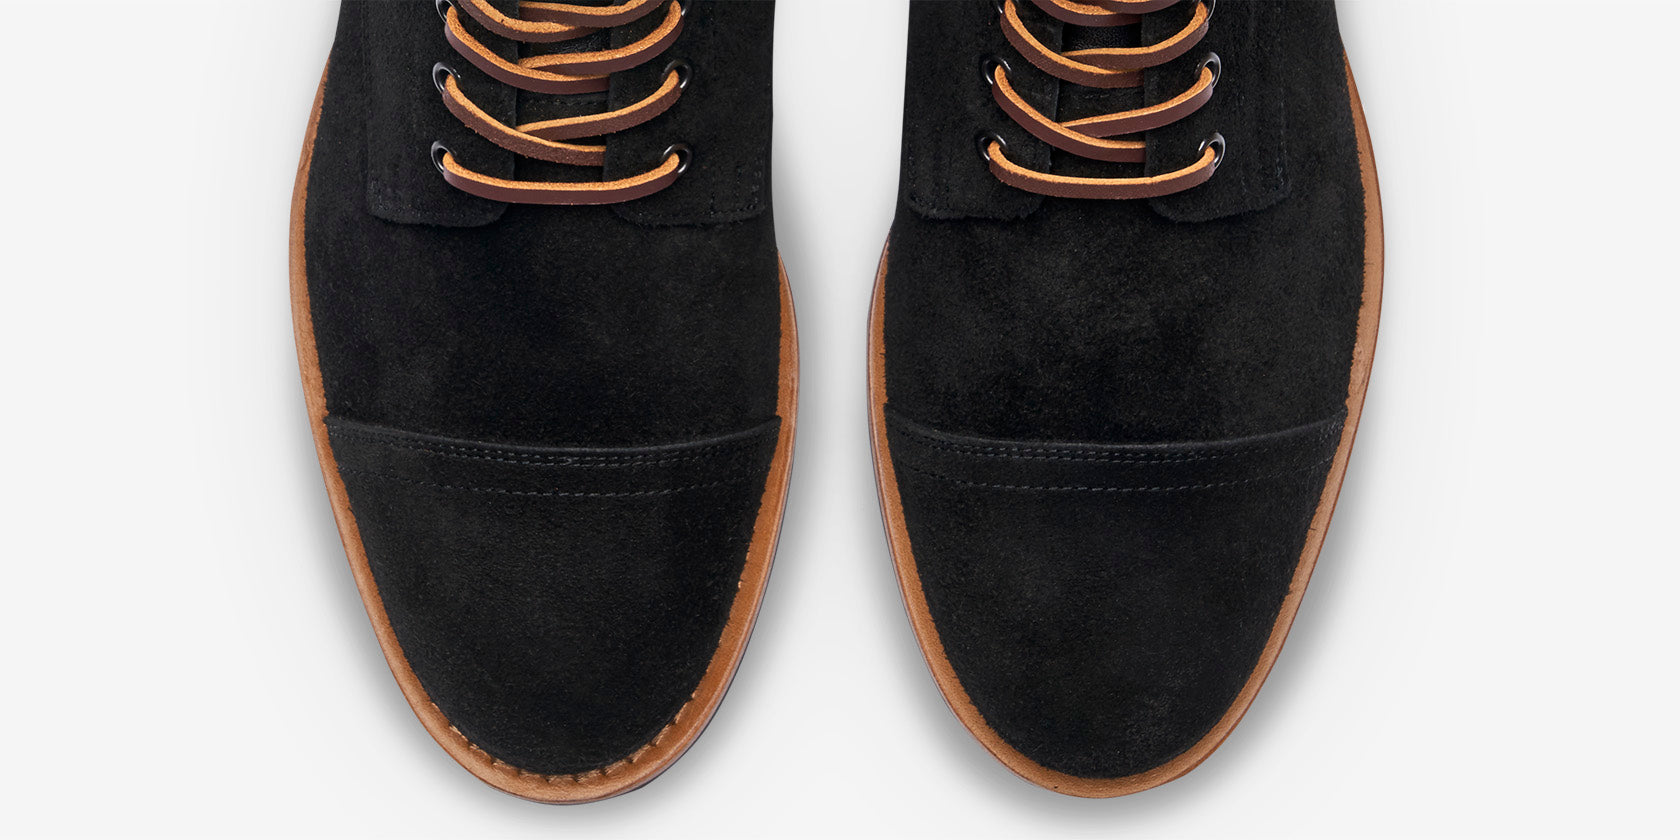 SB 1 | Black Roughout